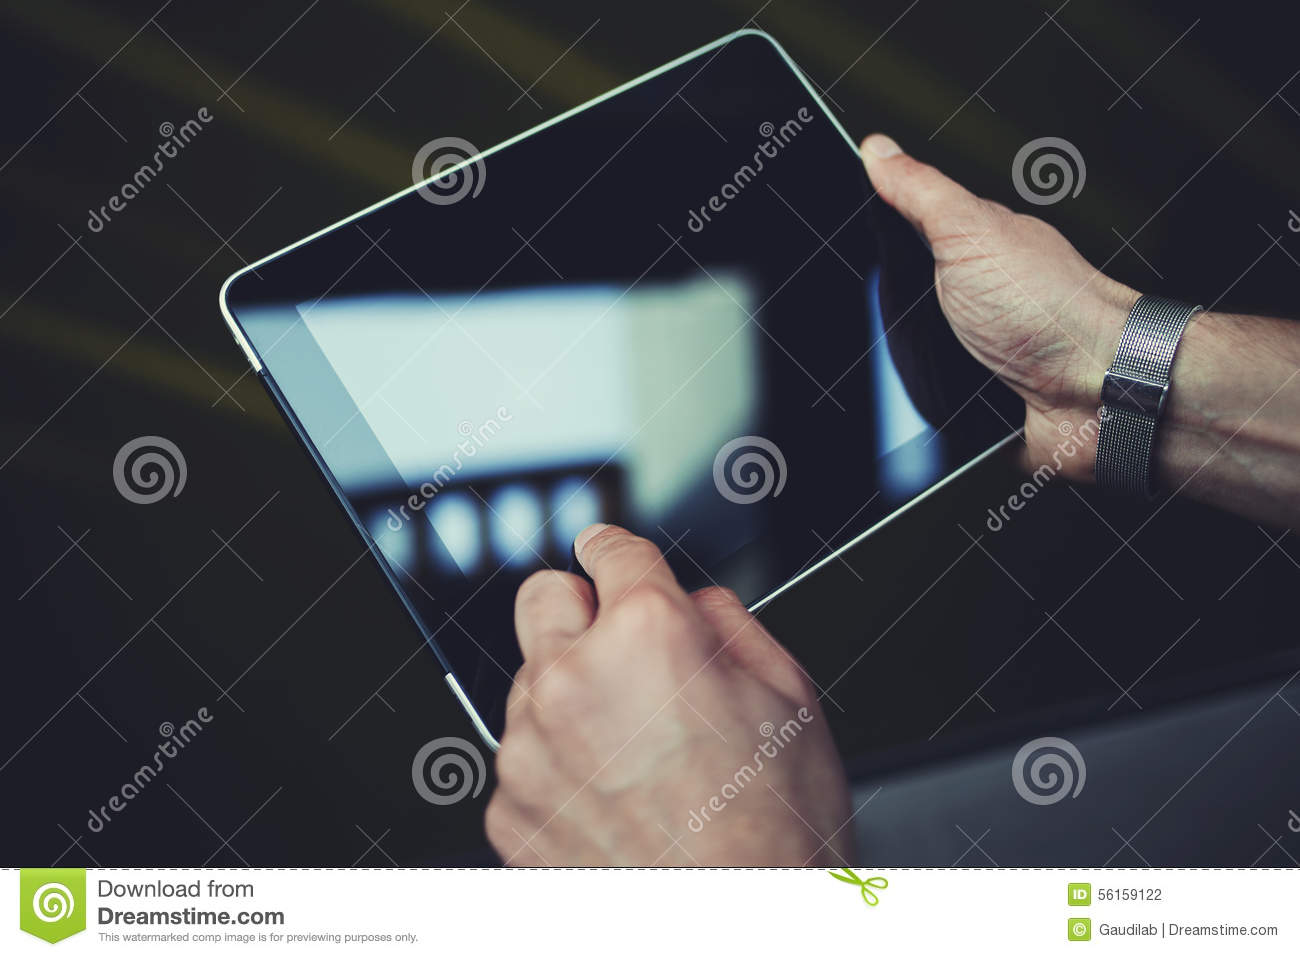 topo_touch-pad-empty-display-space-publicity-information-advertising-text-man-s-hands-holding-digita